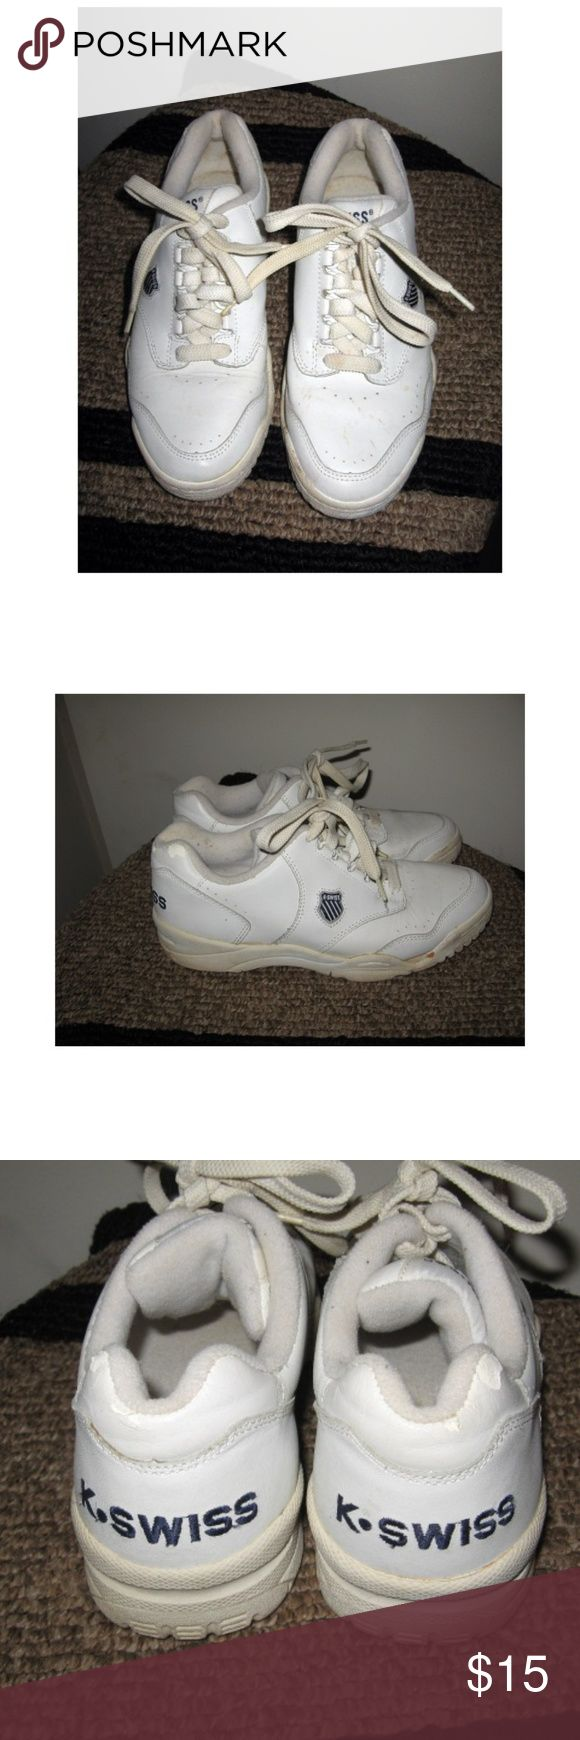 Vintage K Swiss K-26 Sneakers 7 Vintage K-Swiss early 1990s  D rings non-marking sole Size 7 K-Swiss Shoes Athletic Shoes